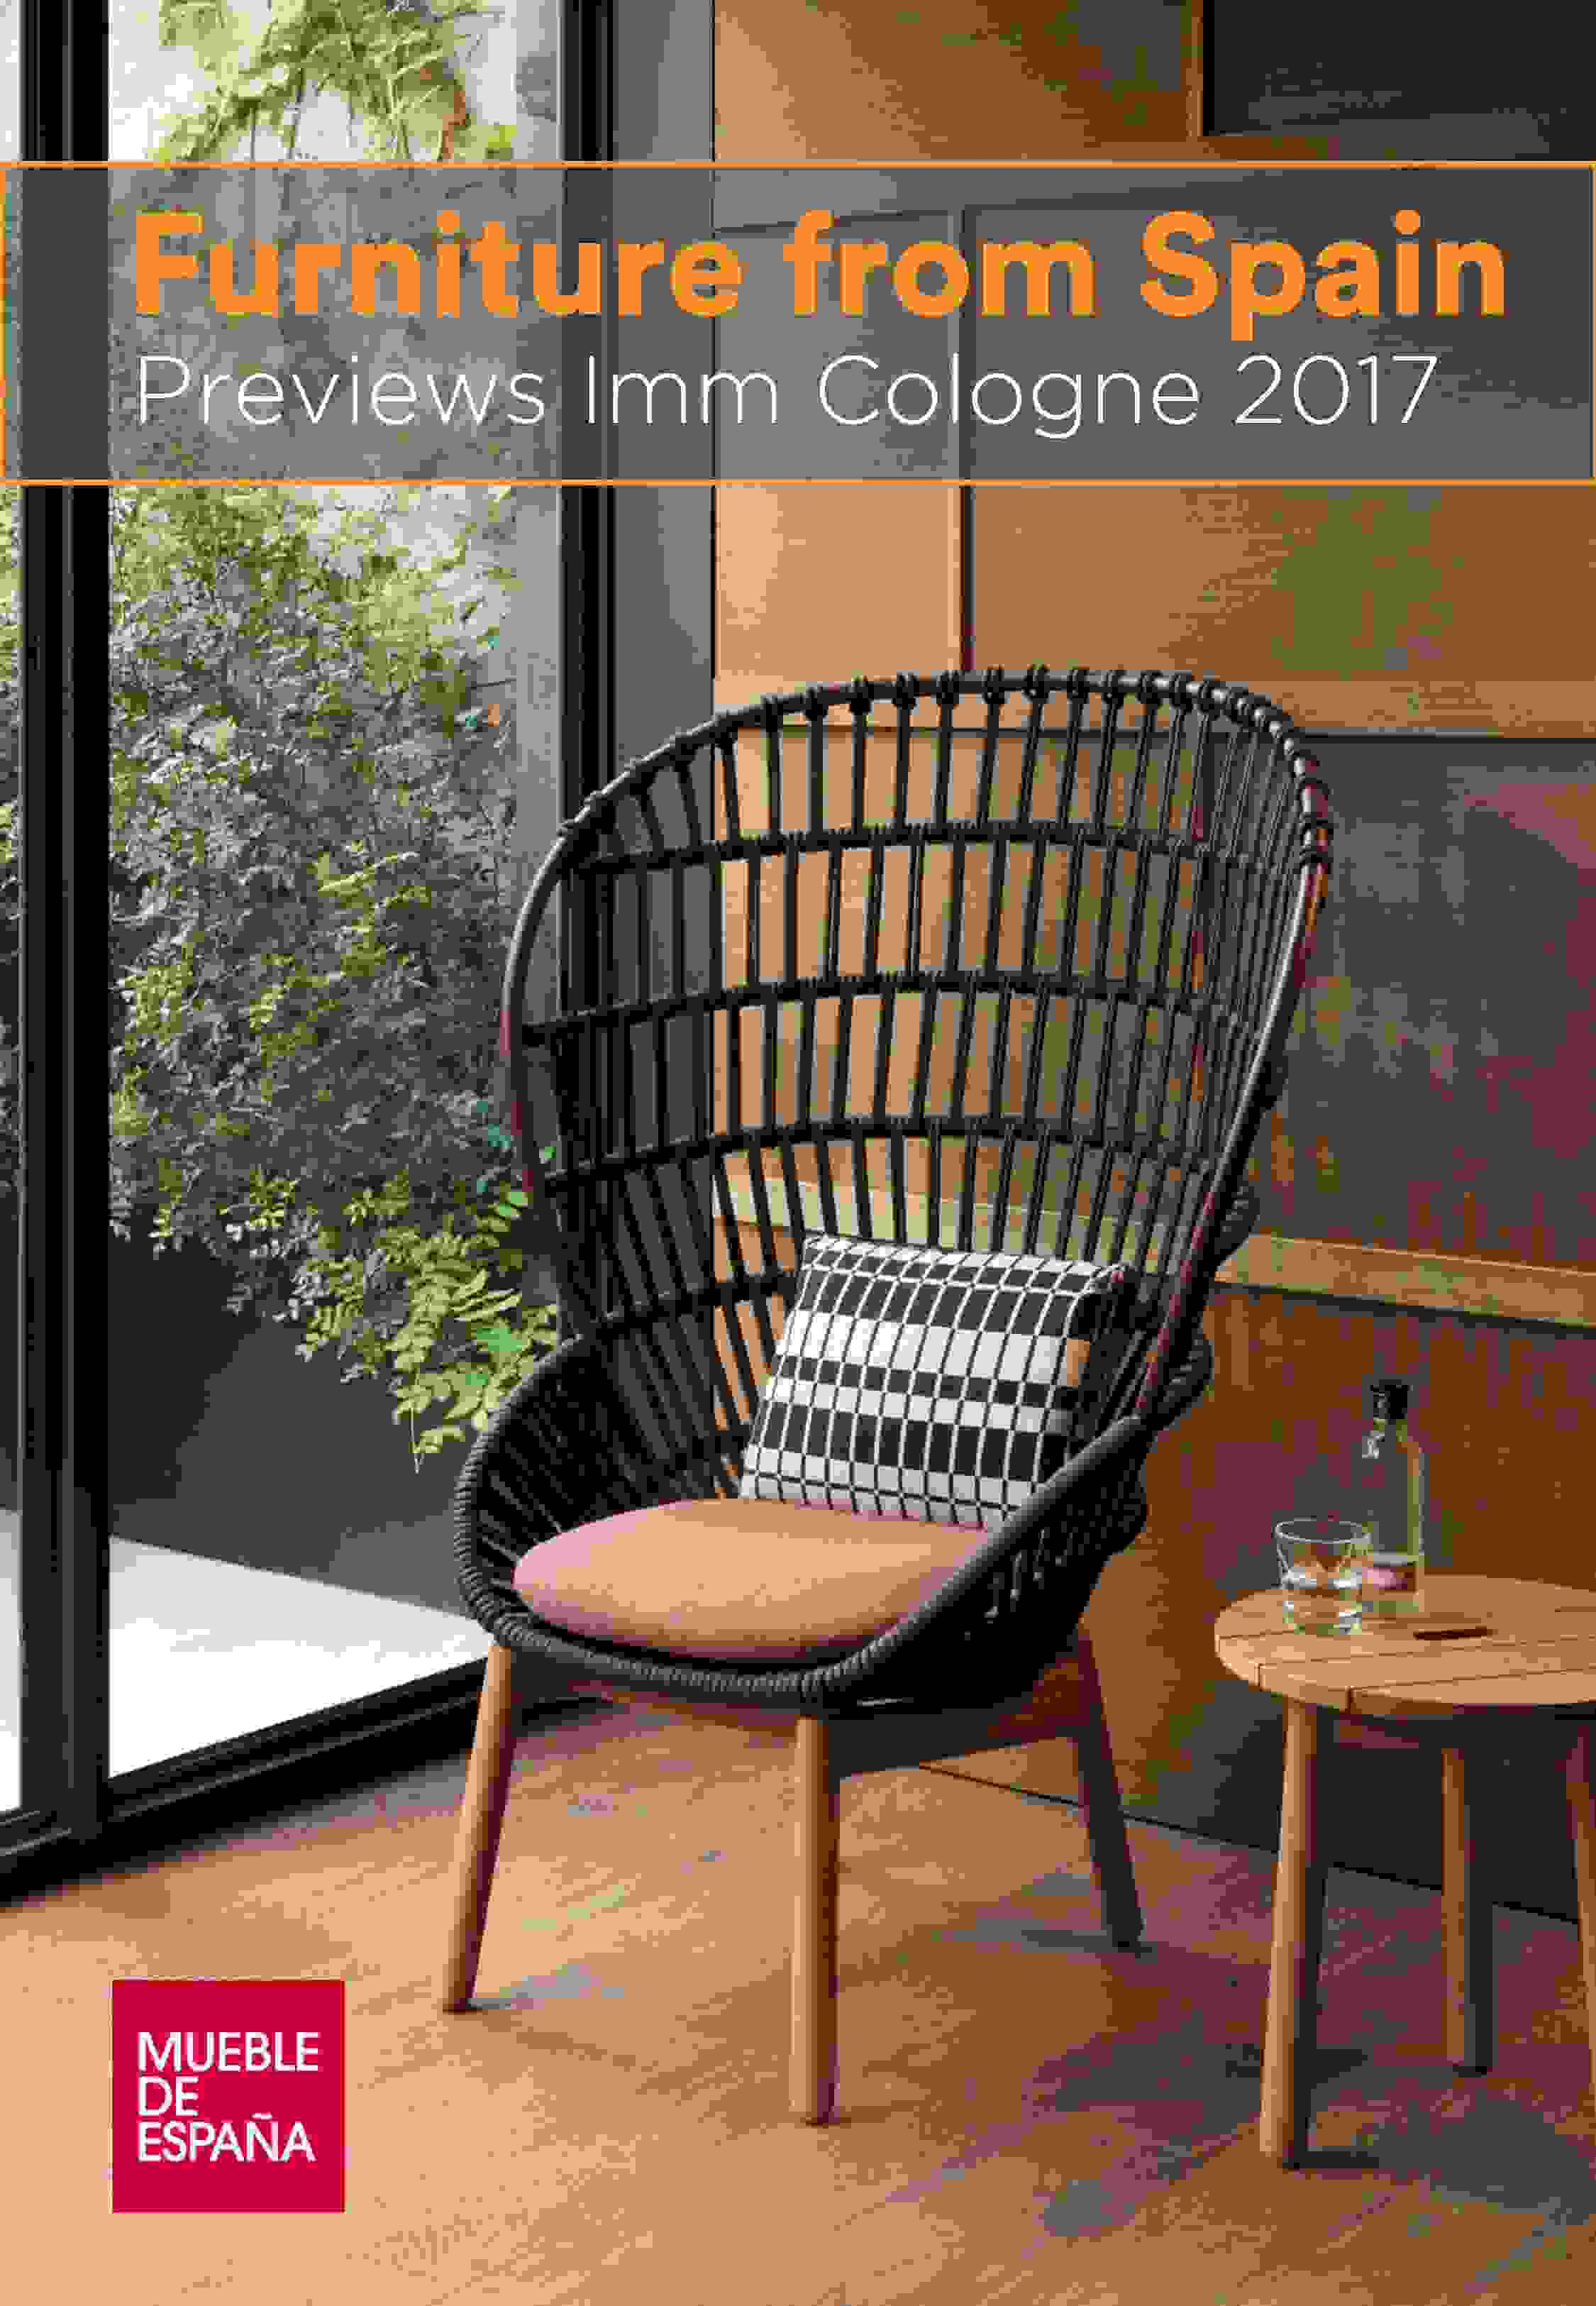 portada press preview imm cologne 2017.jpg